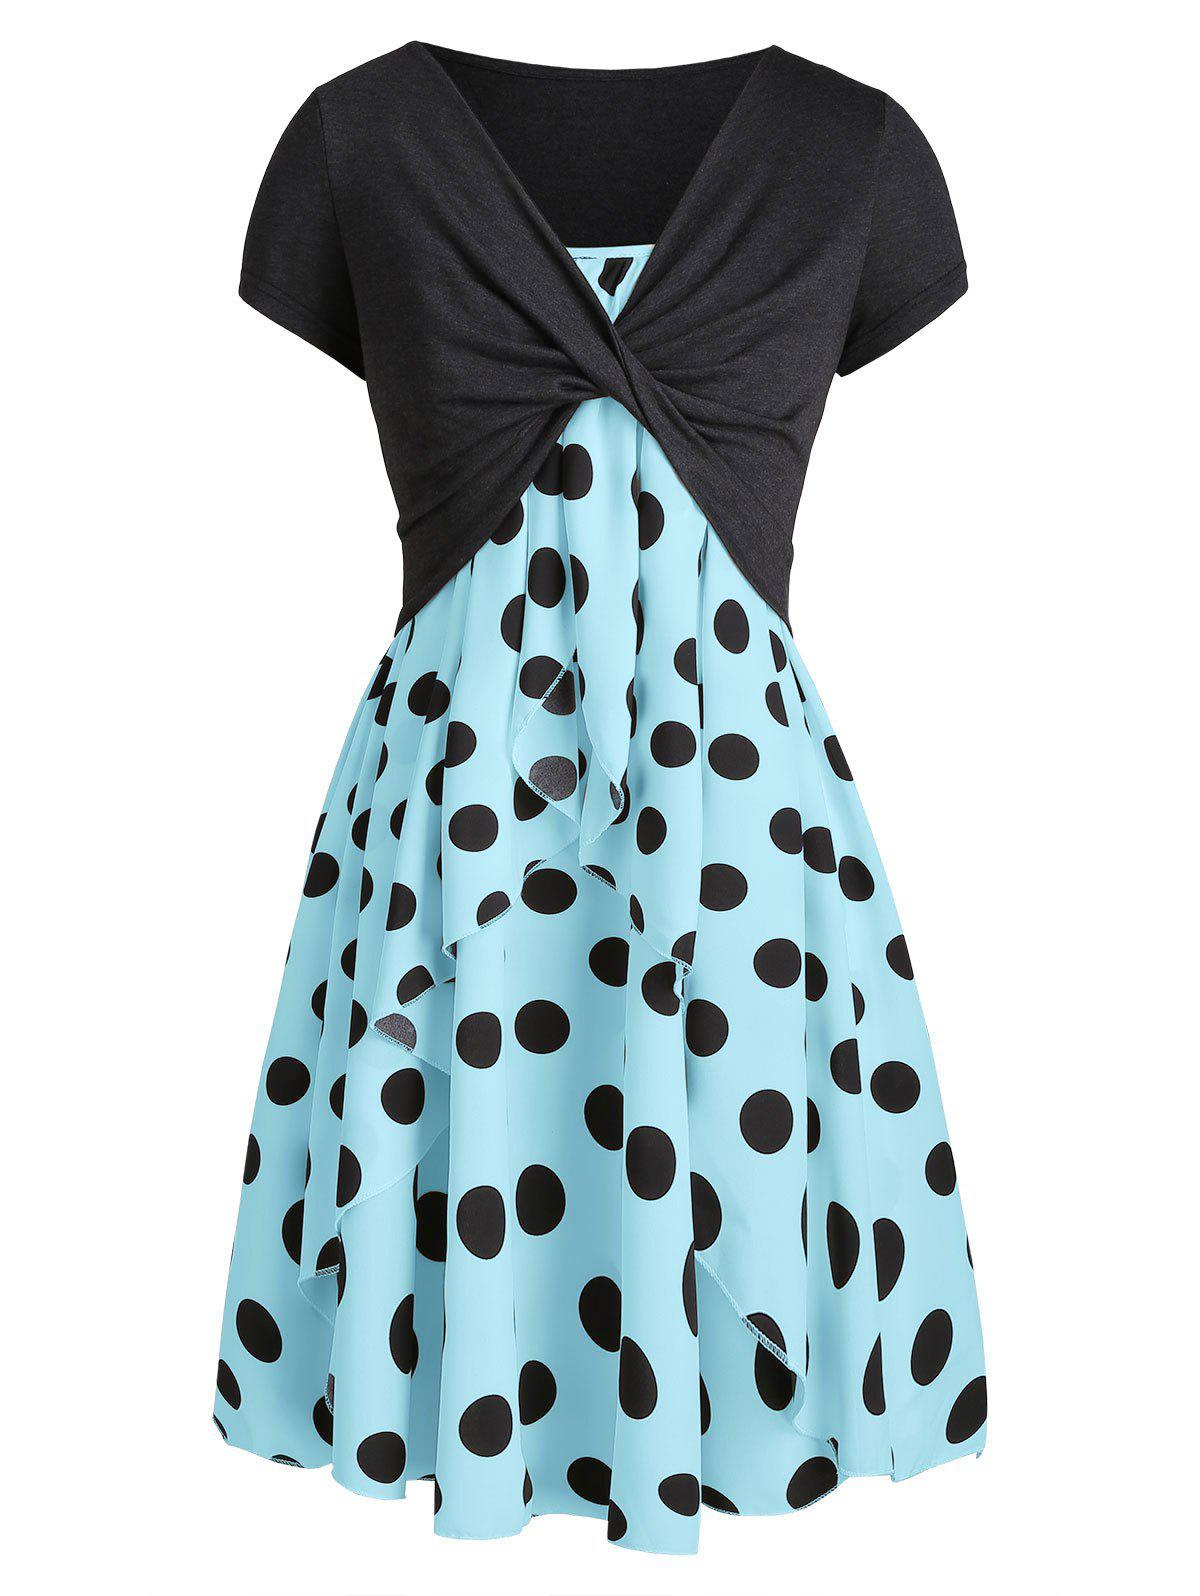 Polka Dot Cami Dress with Plunging T-shirt - LIGHT BLUE XL